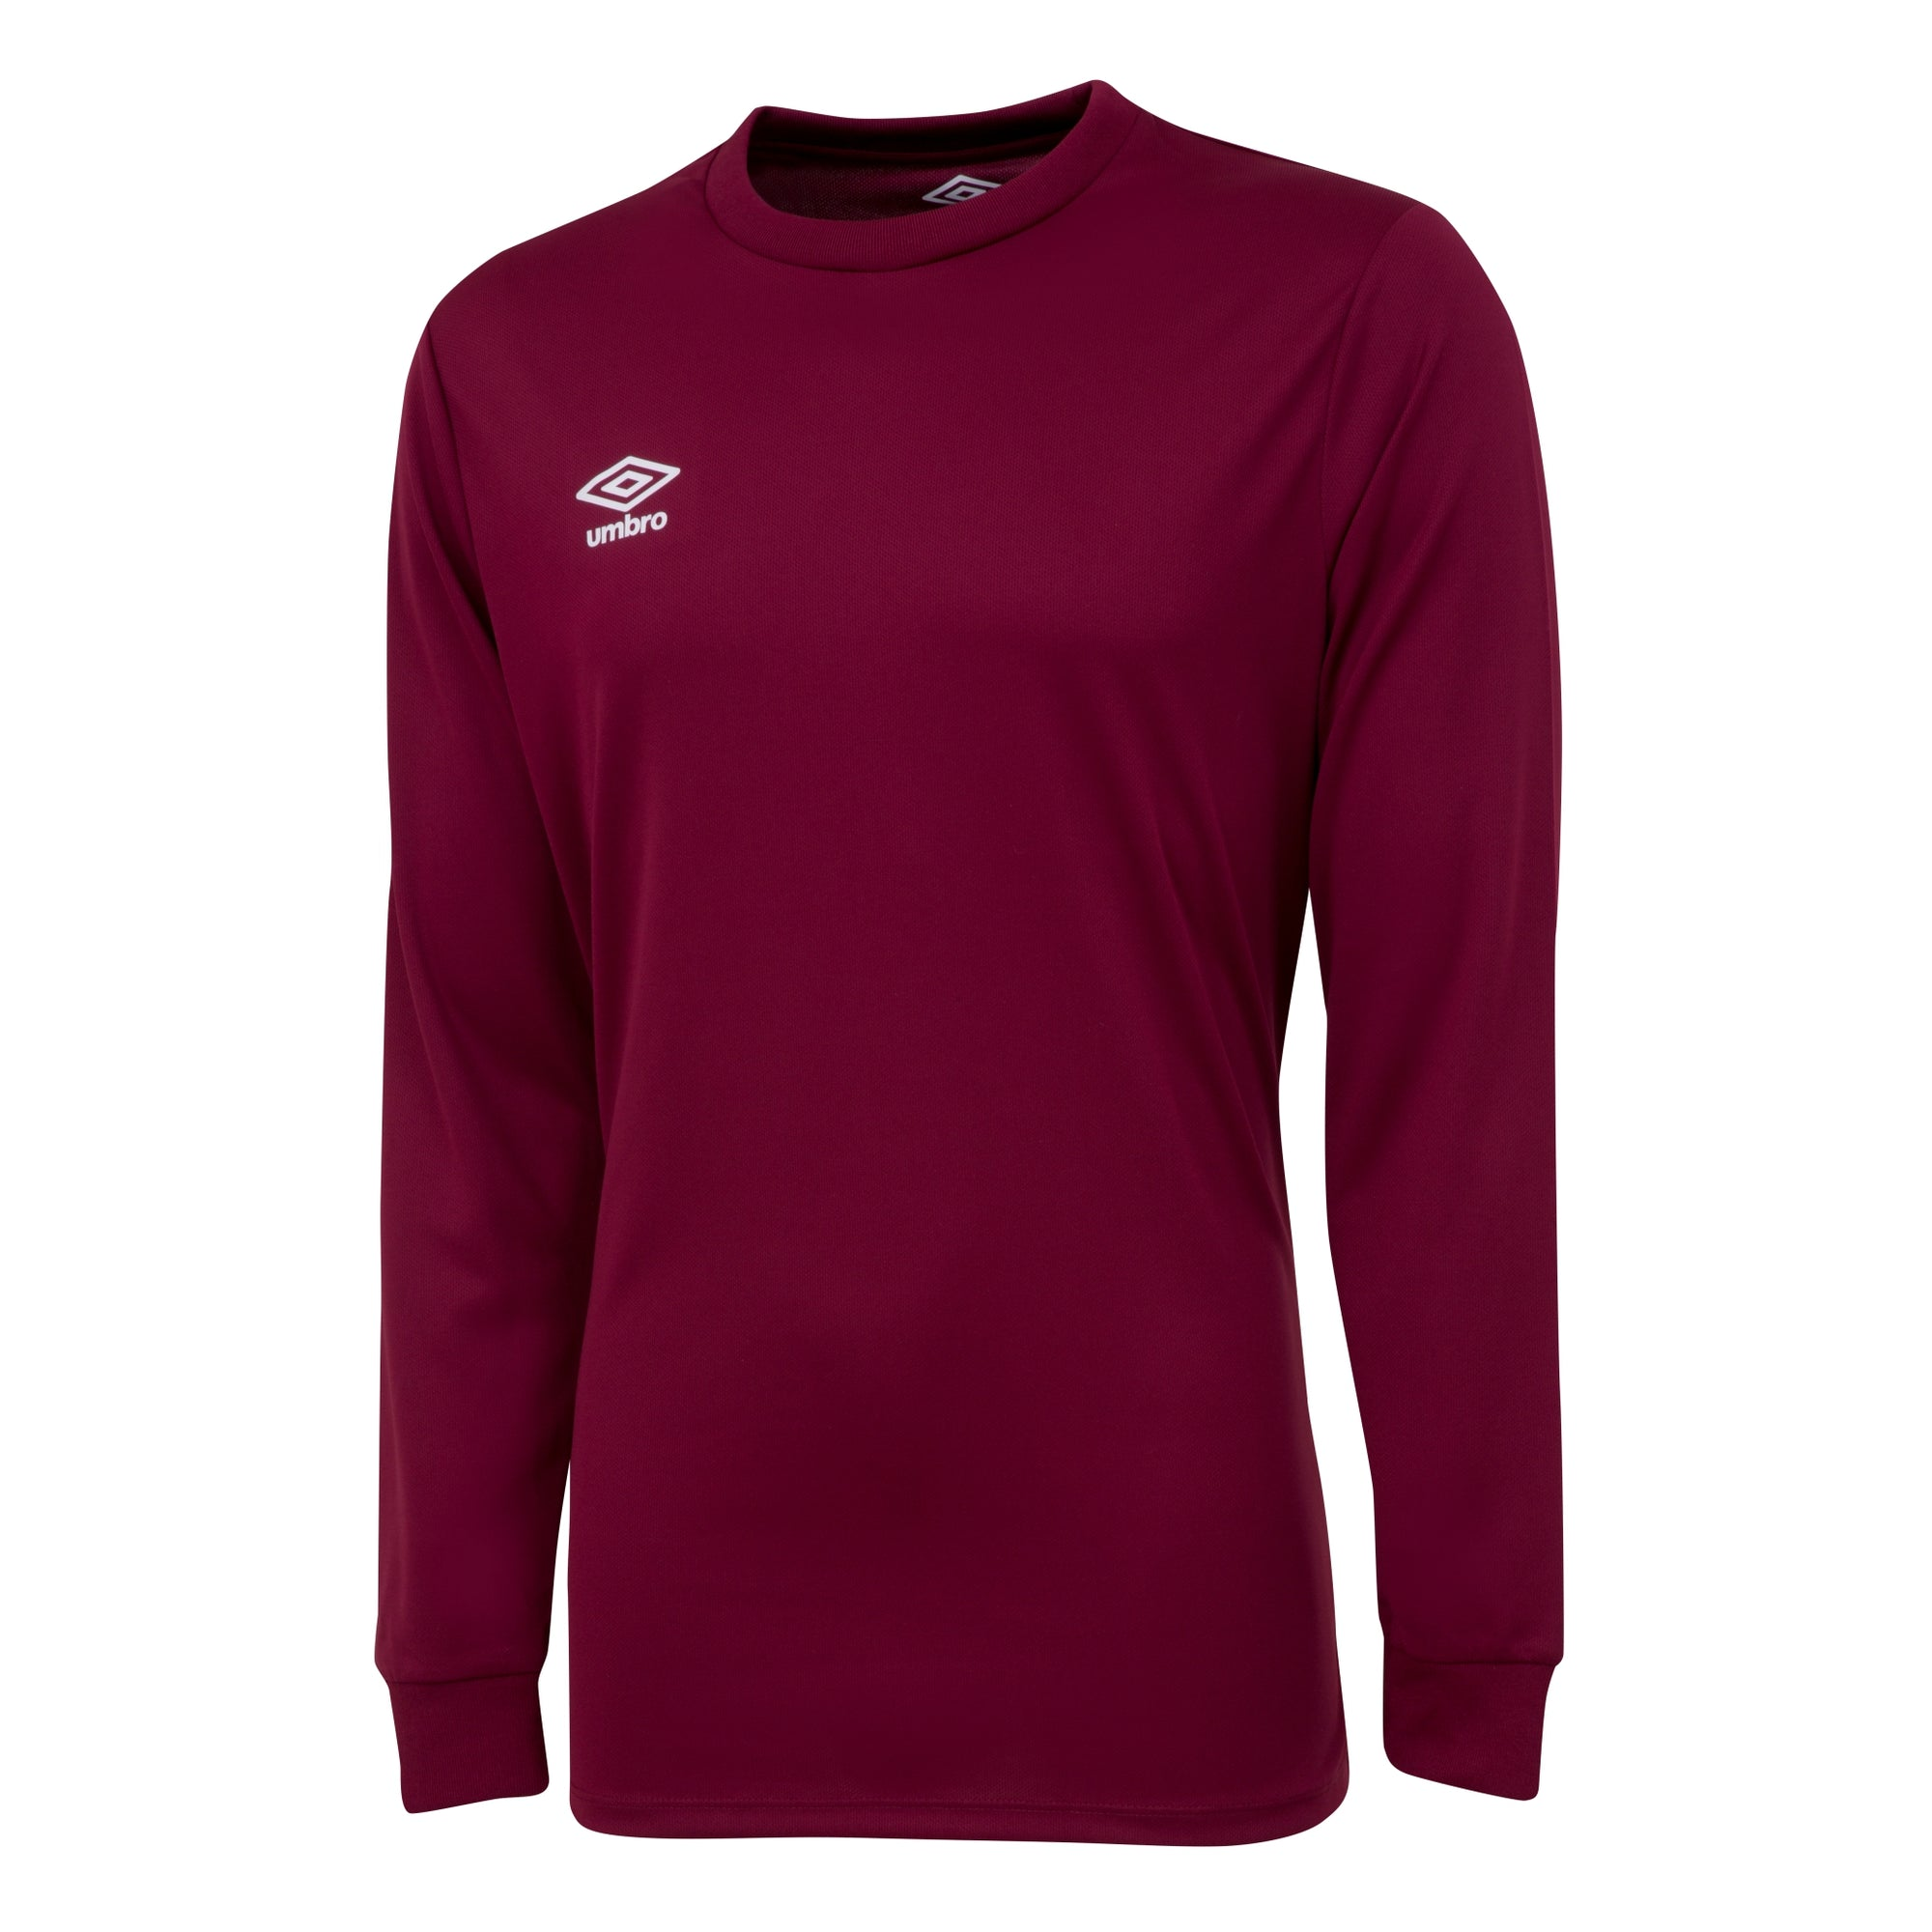 Umbro long sleeve club jersey in claret with white printed Umbro logo